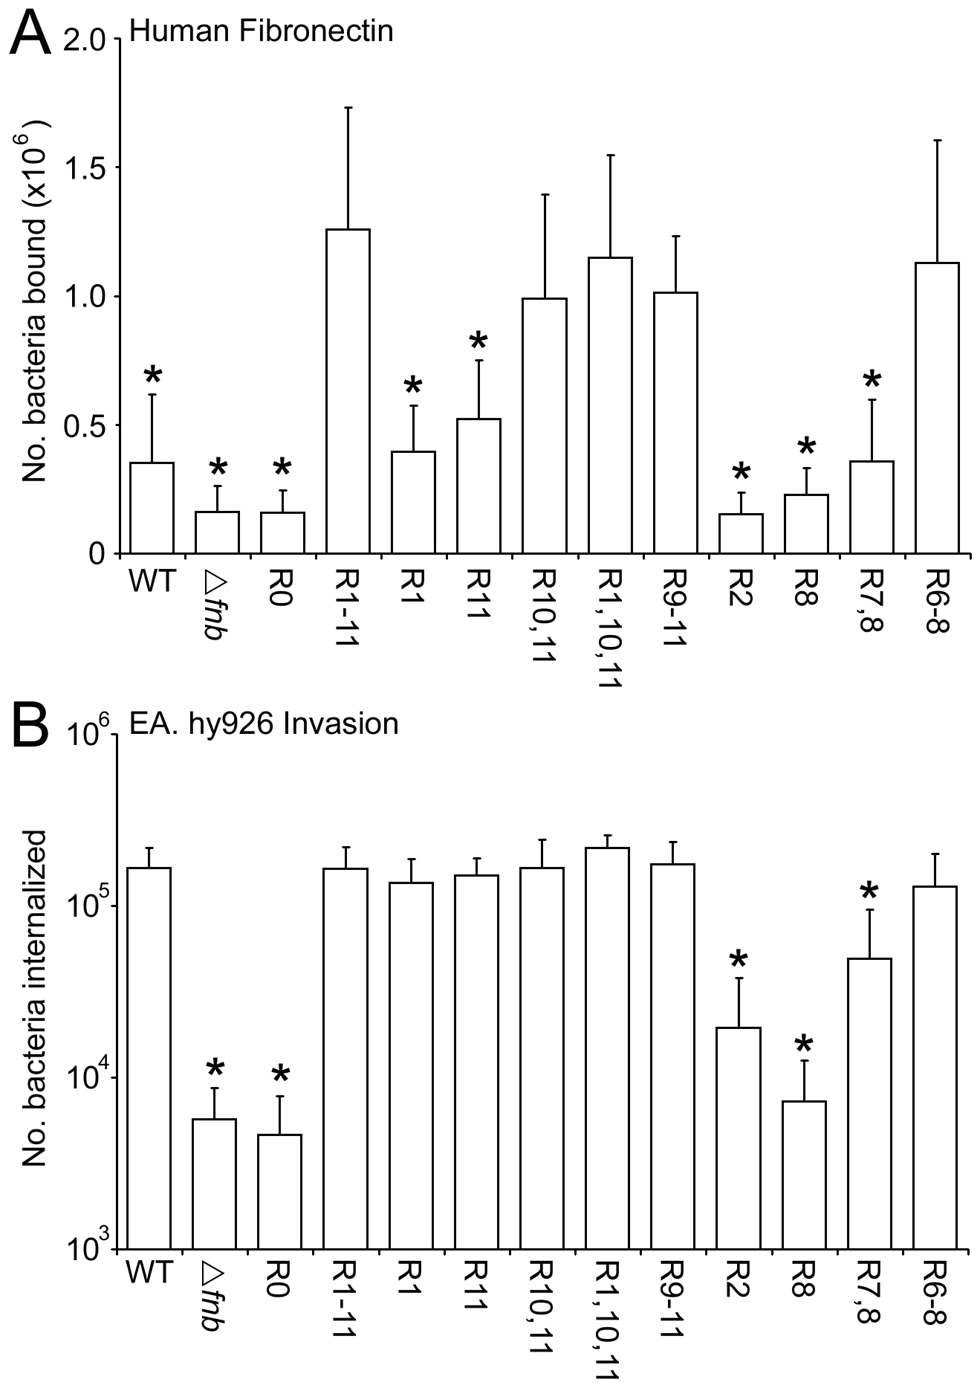 Composition of the Fn-binding repeat region significantly affects adhesion and internalization of <i>S. aureus</i> 8325.4.